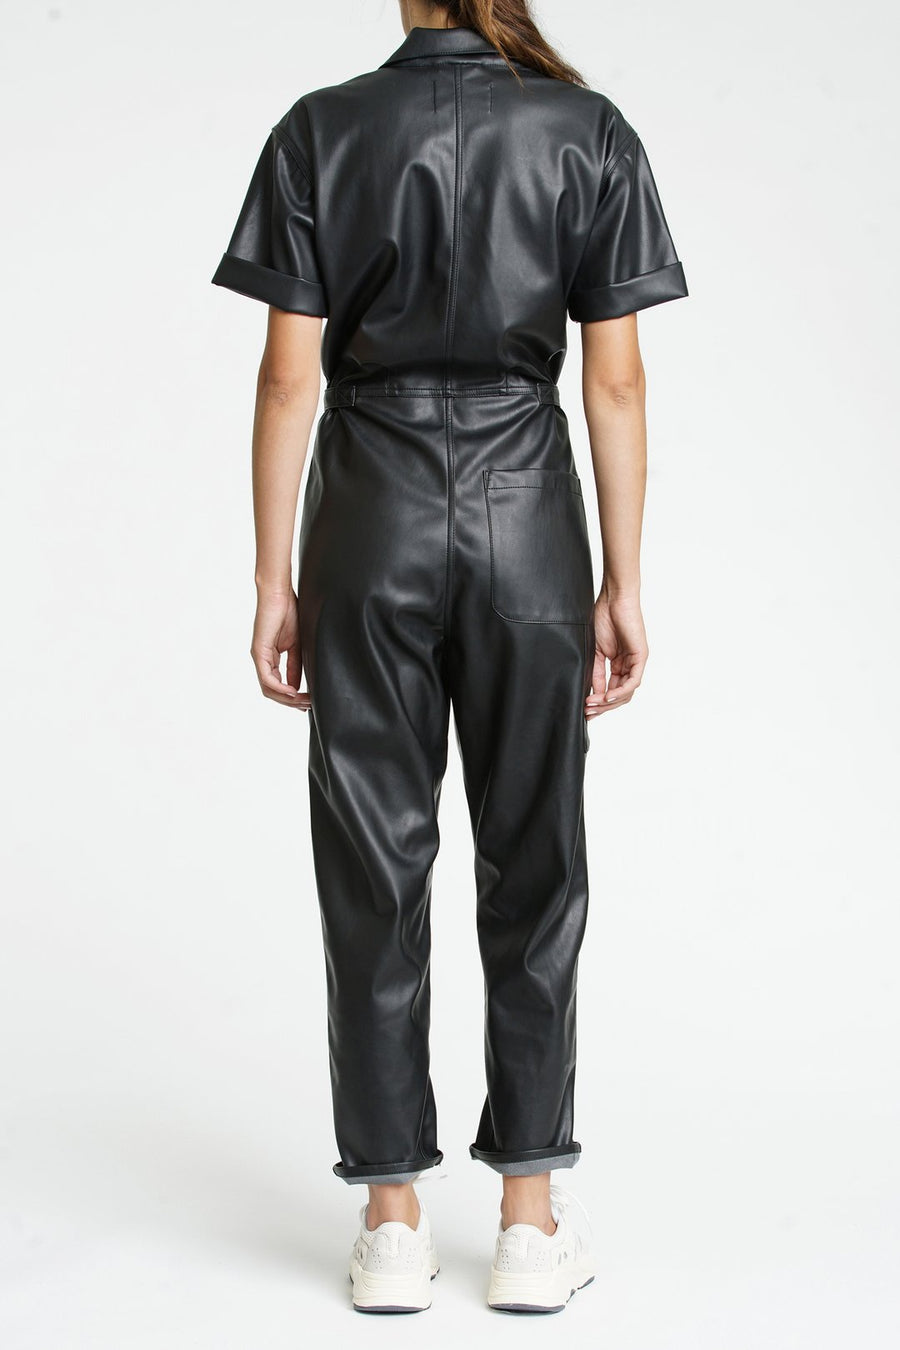 Pistola Vegan Leather Jumpsuit